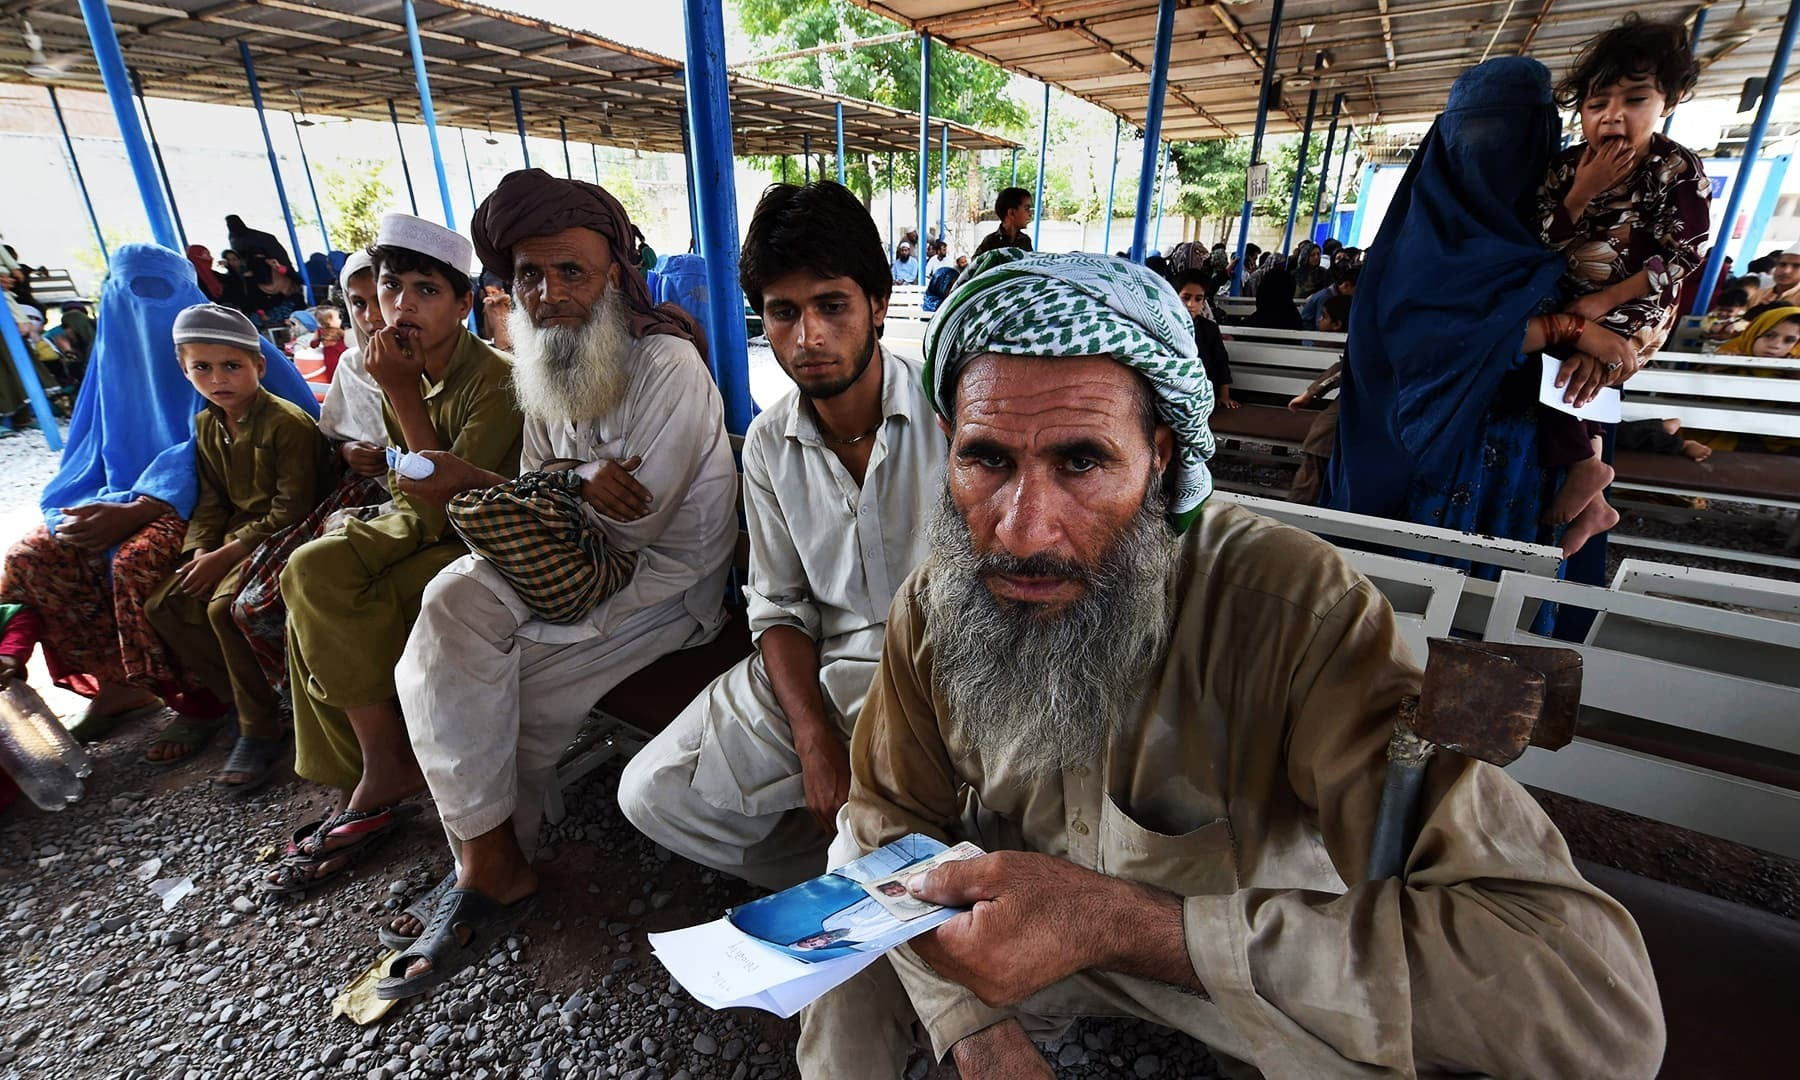 In this file photo from September 7, 2016, Afghan refugees wait to register at the United Nations High Commissioner for Refugees (UNHCR) repatriation centre on the outskirts of Peshawar. — AFP